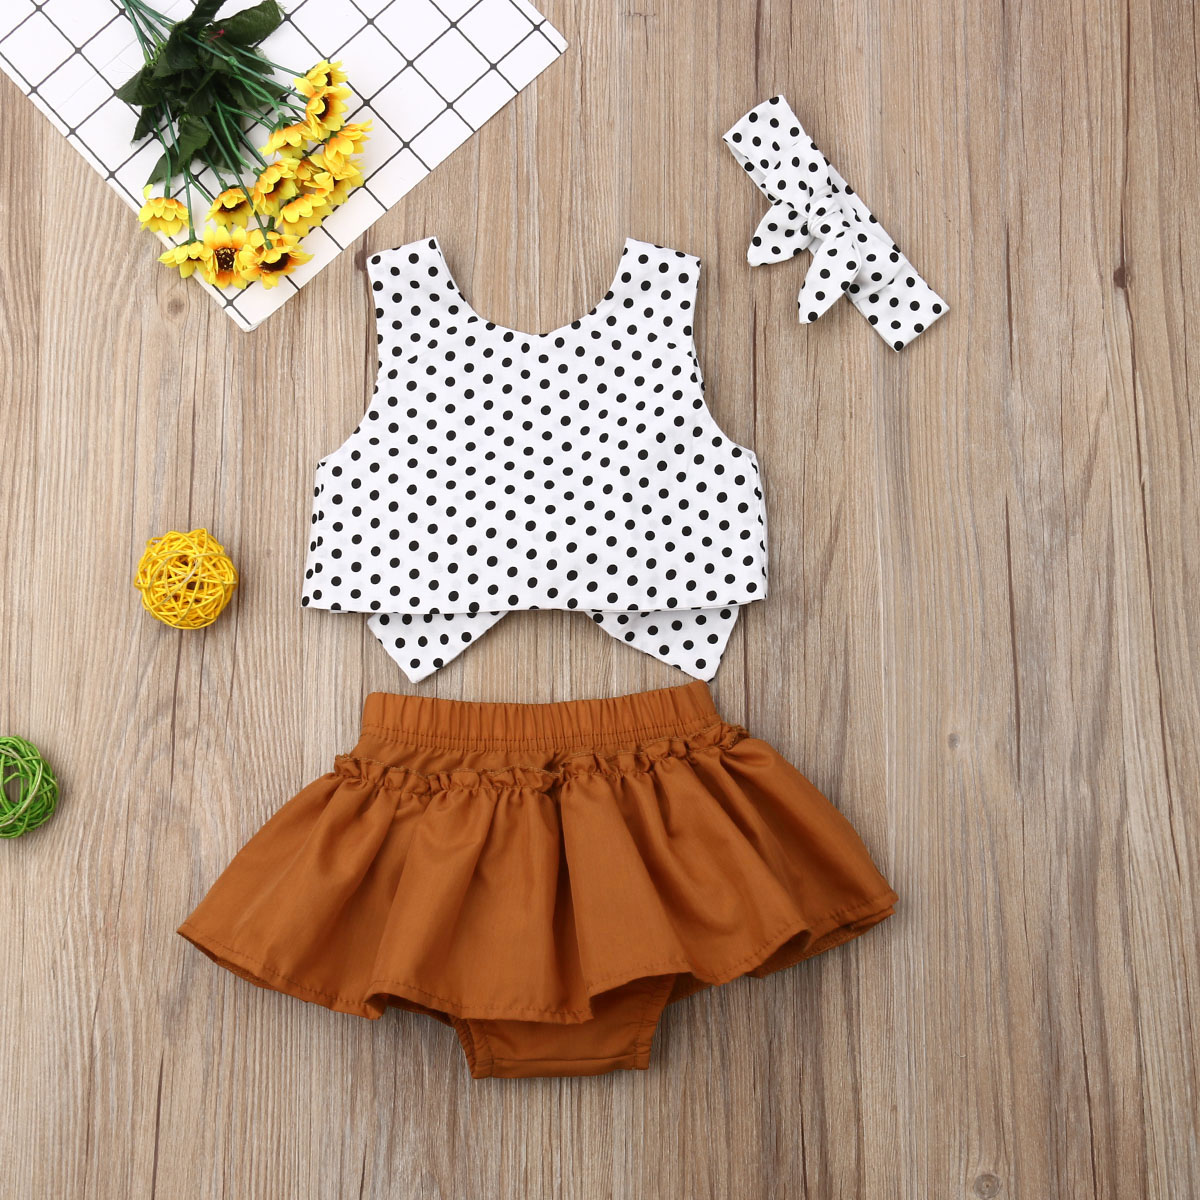 Pudcoco Summer Newborn Baby Girl Clothes Sleeveless Polka Dot Cropped Tops Bowknot Short Skirt Headband 3Pcs Outfits Clothes